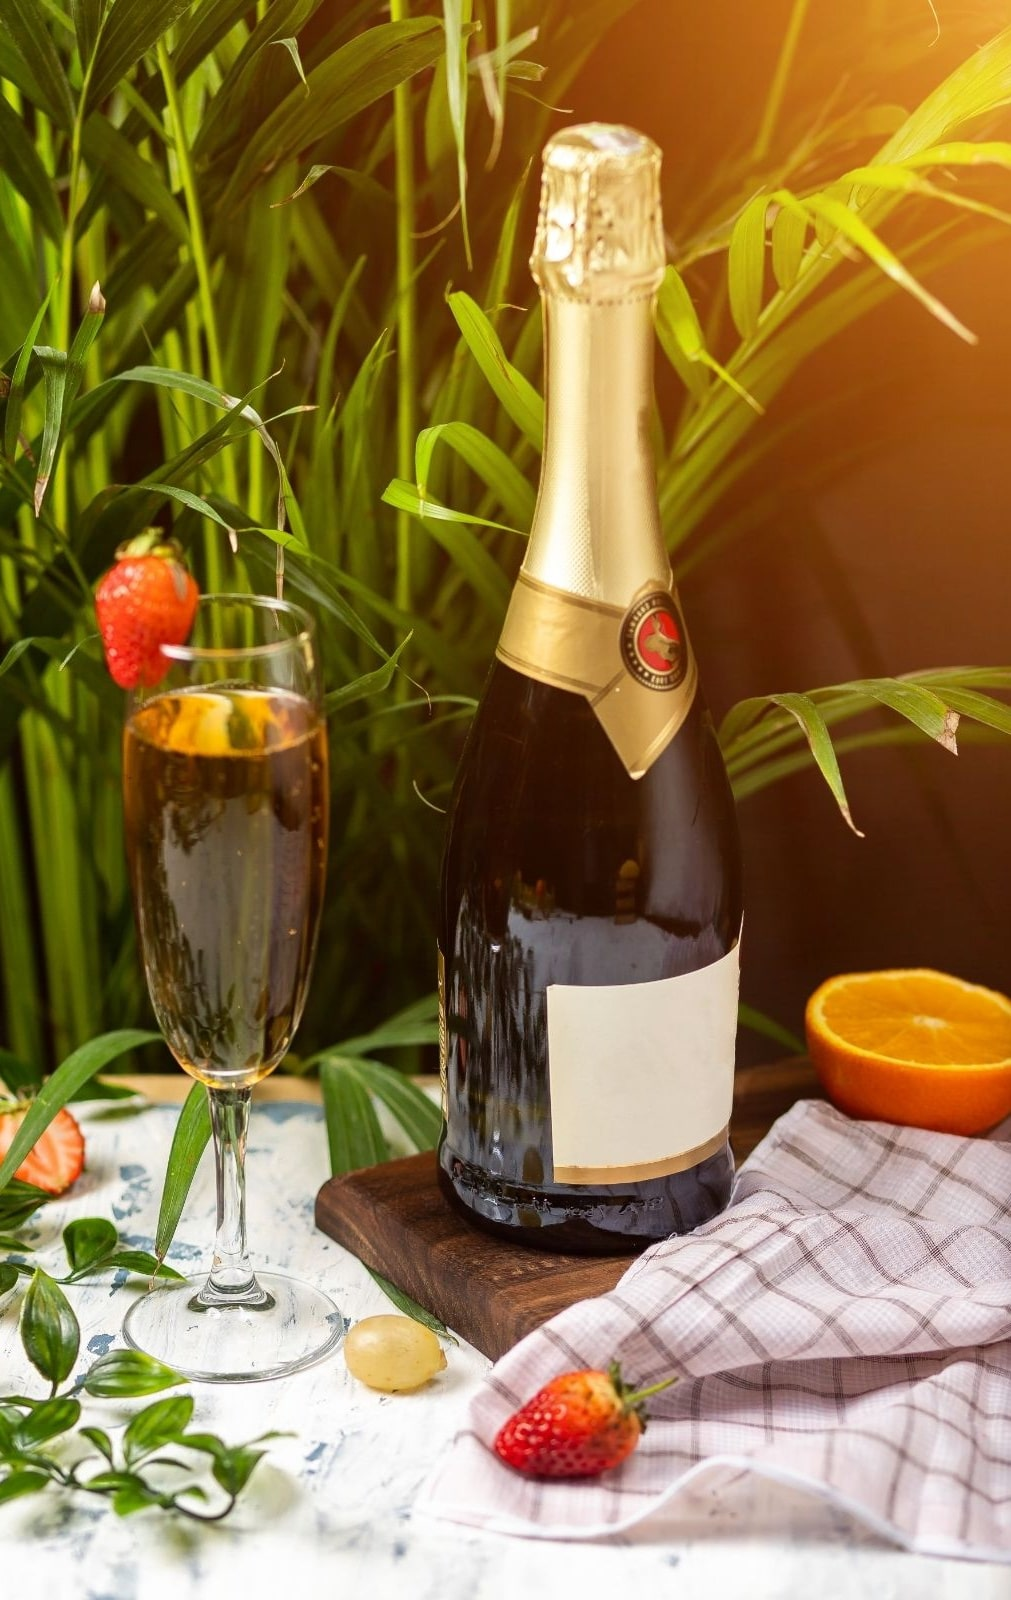 bottle of Prosecco with champagne flute glass and strawberry